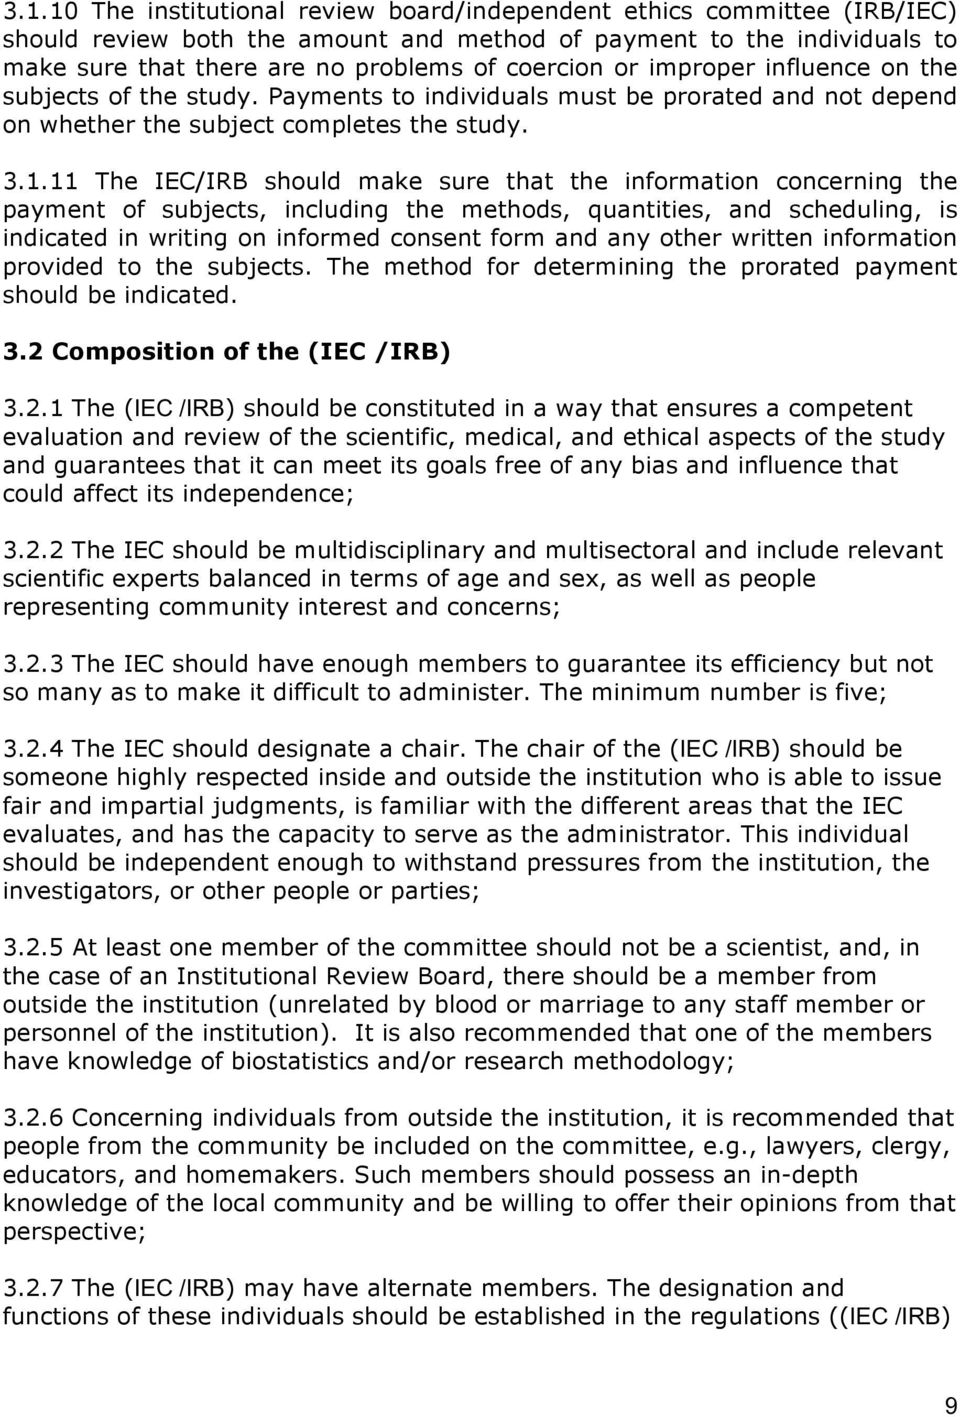 11 The IEC/IRB should make sure that the information concerning the payment of subjects, including the methods, quantities, and scheduling, is indicated in writing on informed consent form and any